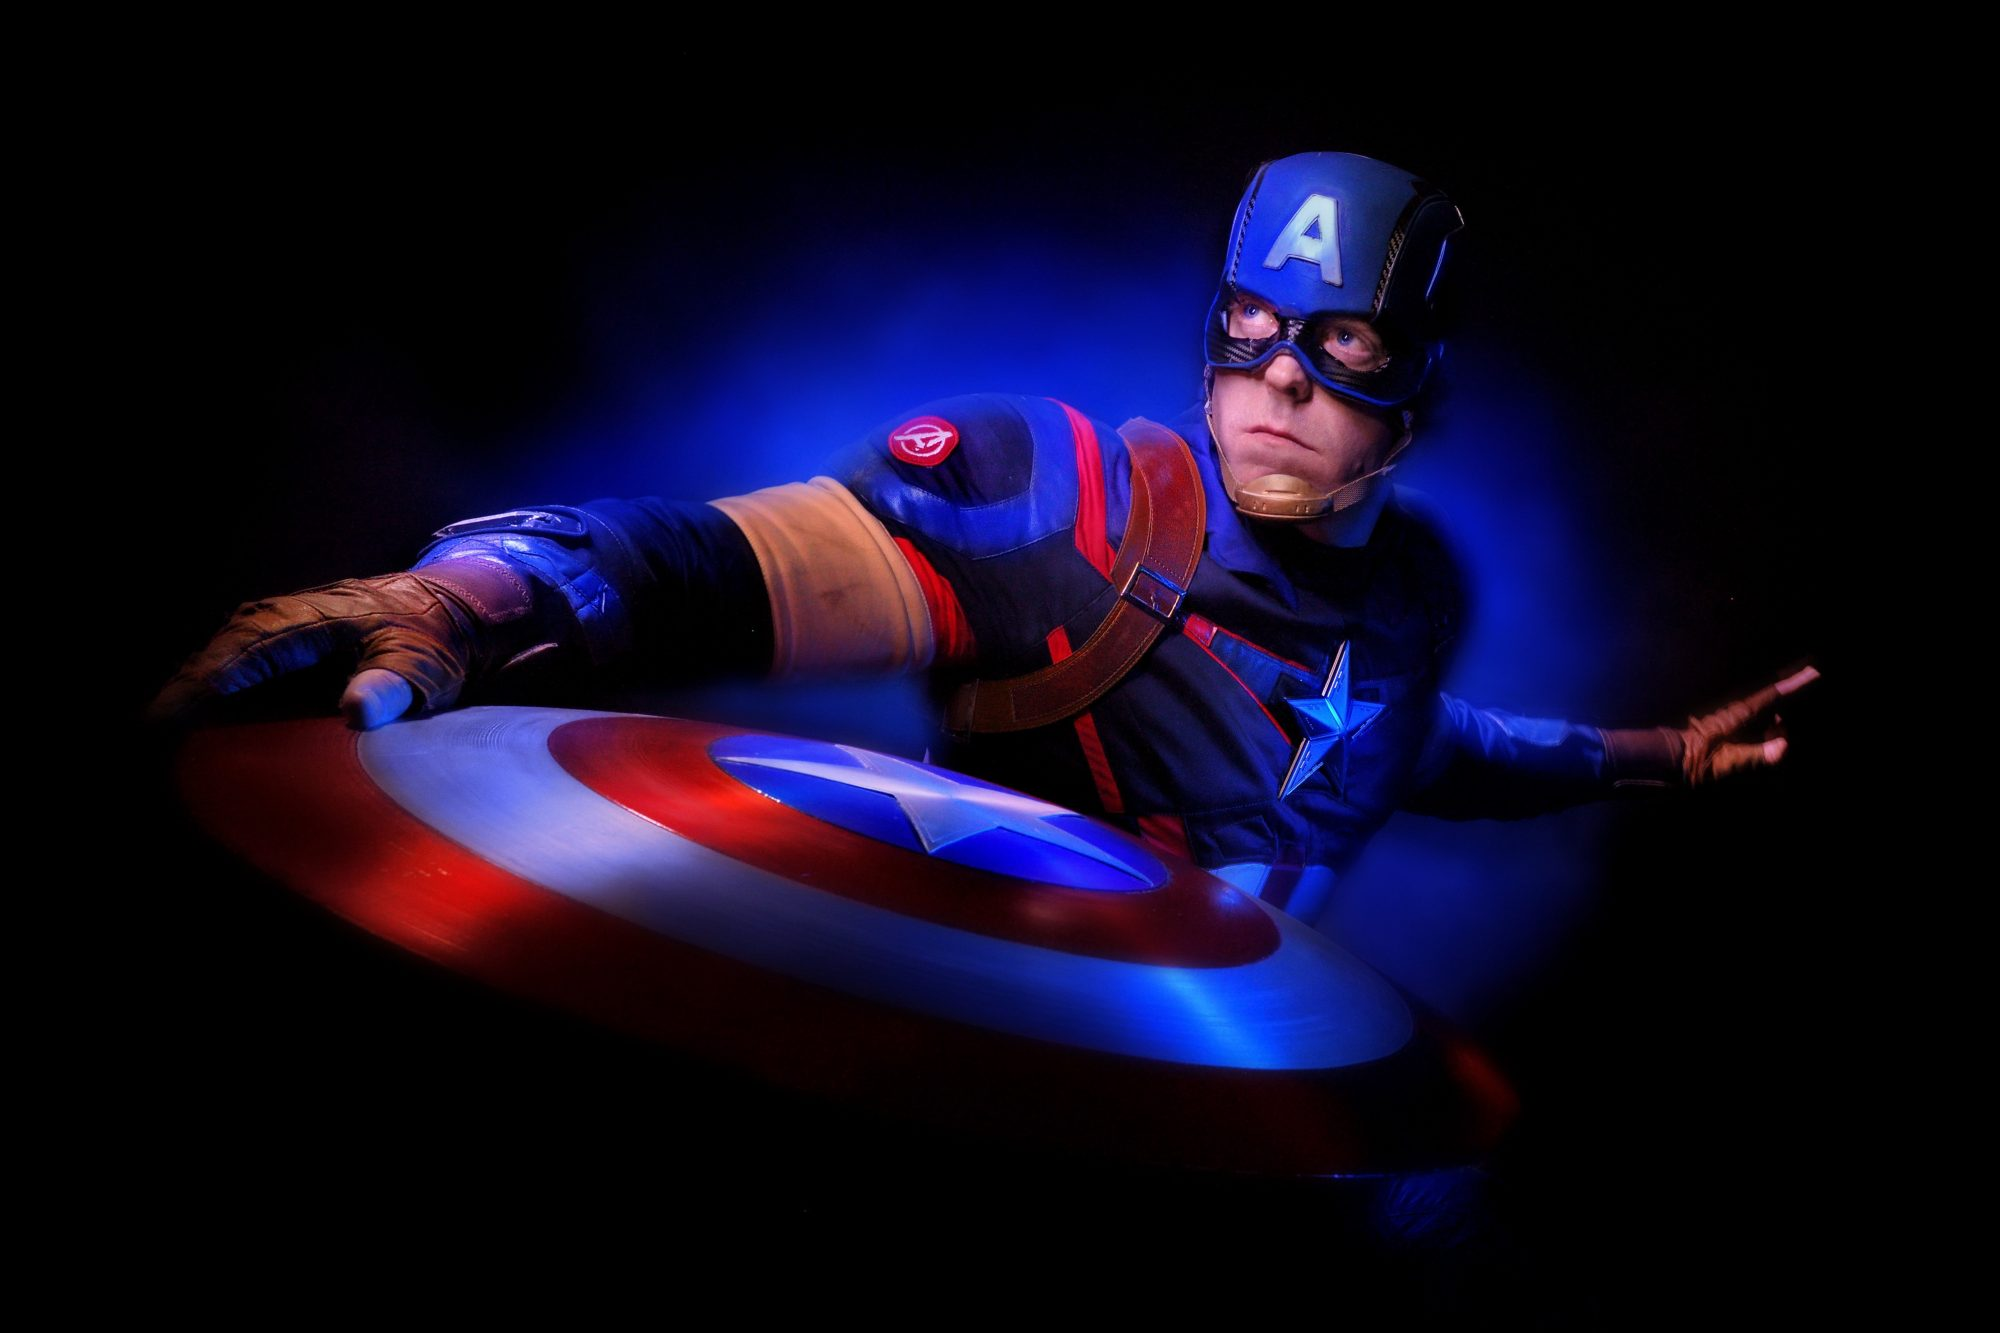 Captain America ... 2016 (c) Dave Black All Rights Res. ph 719 964 6116 www.daveblackphotography.com